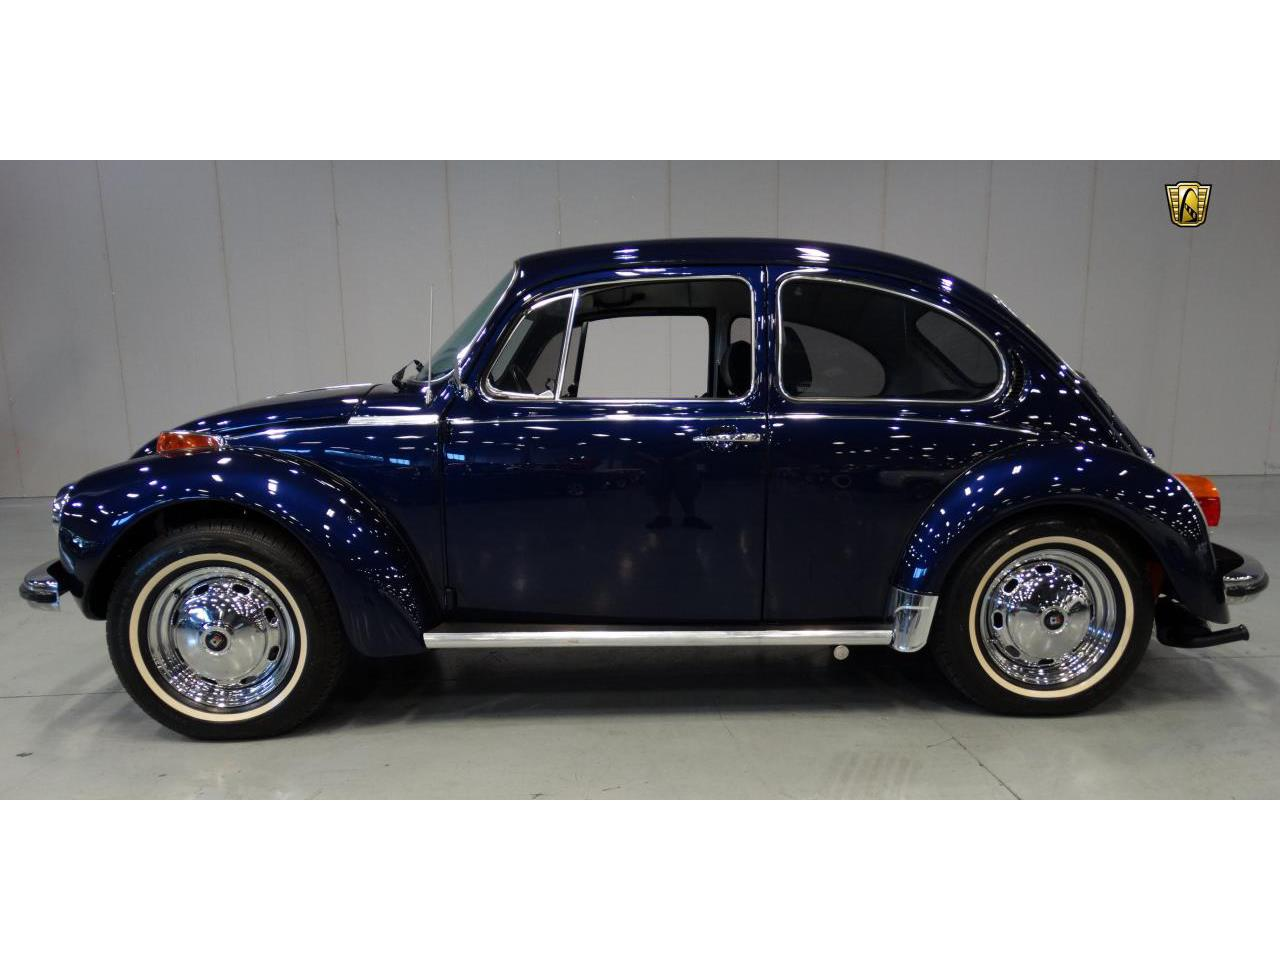 Large Picture of '73 Volkswagen Beetle located in Florida - $20,595.00 - KDKC